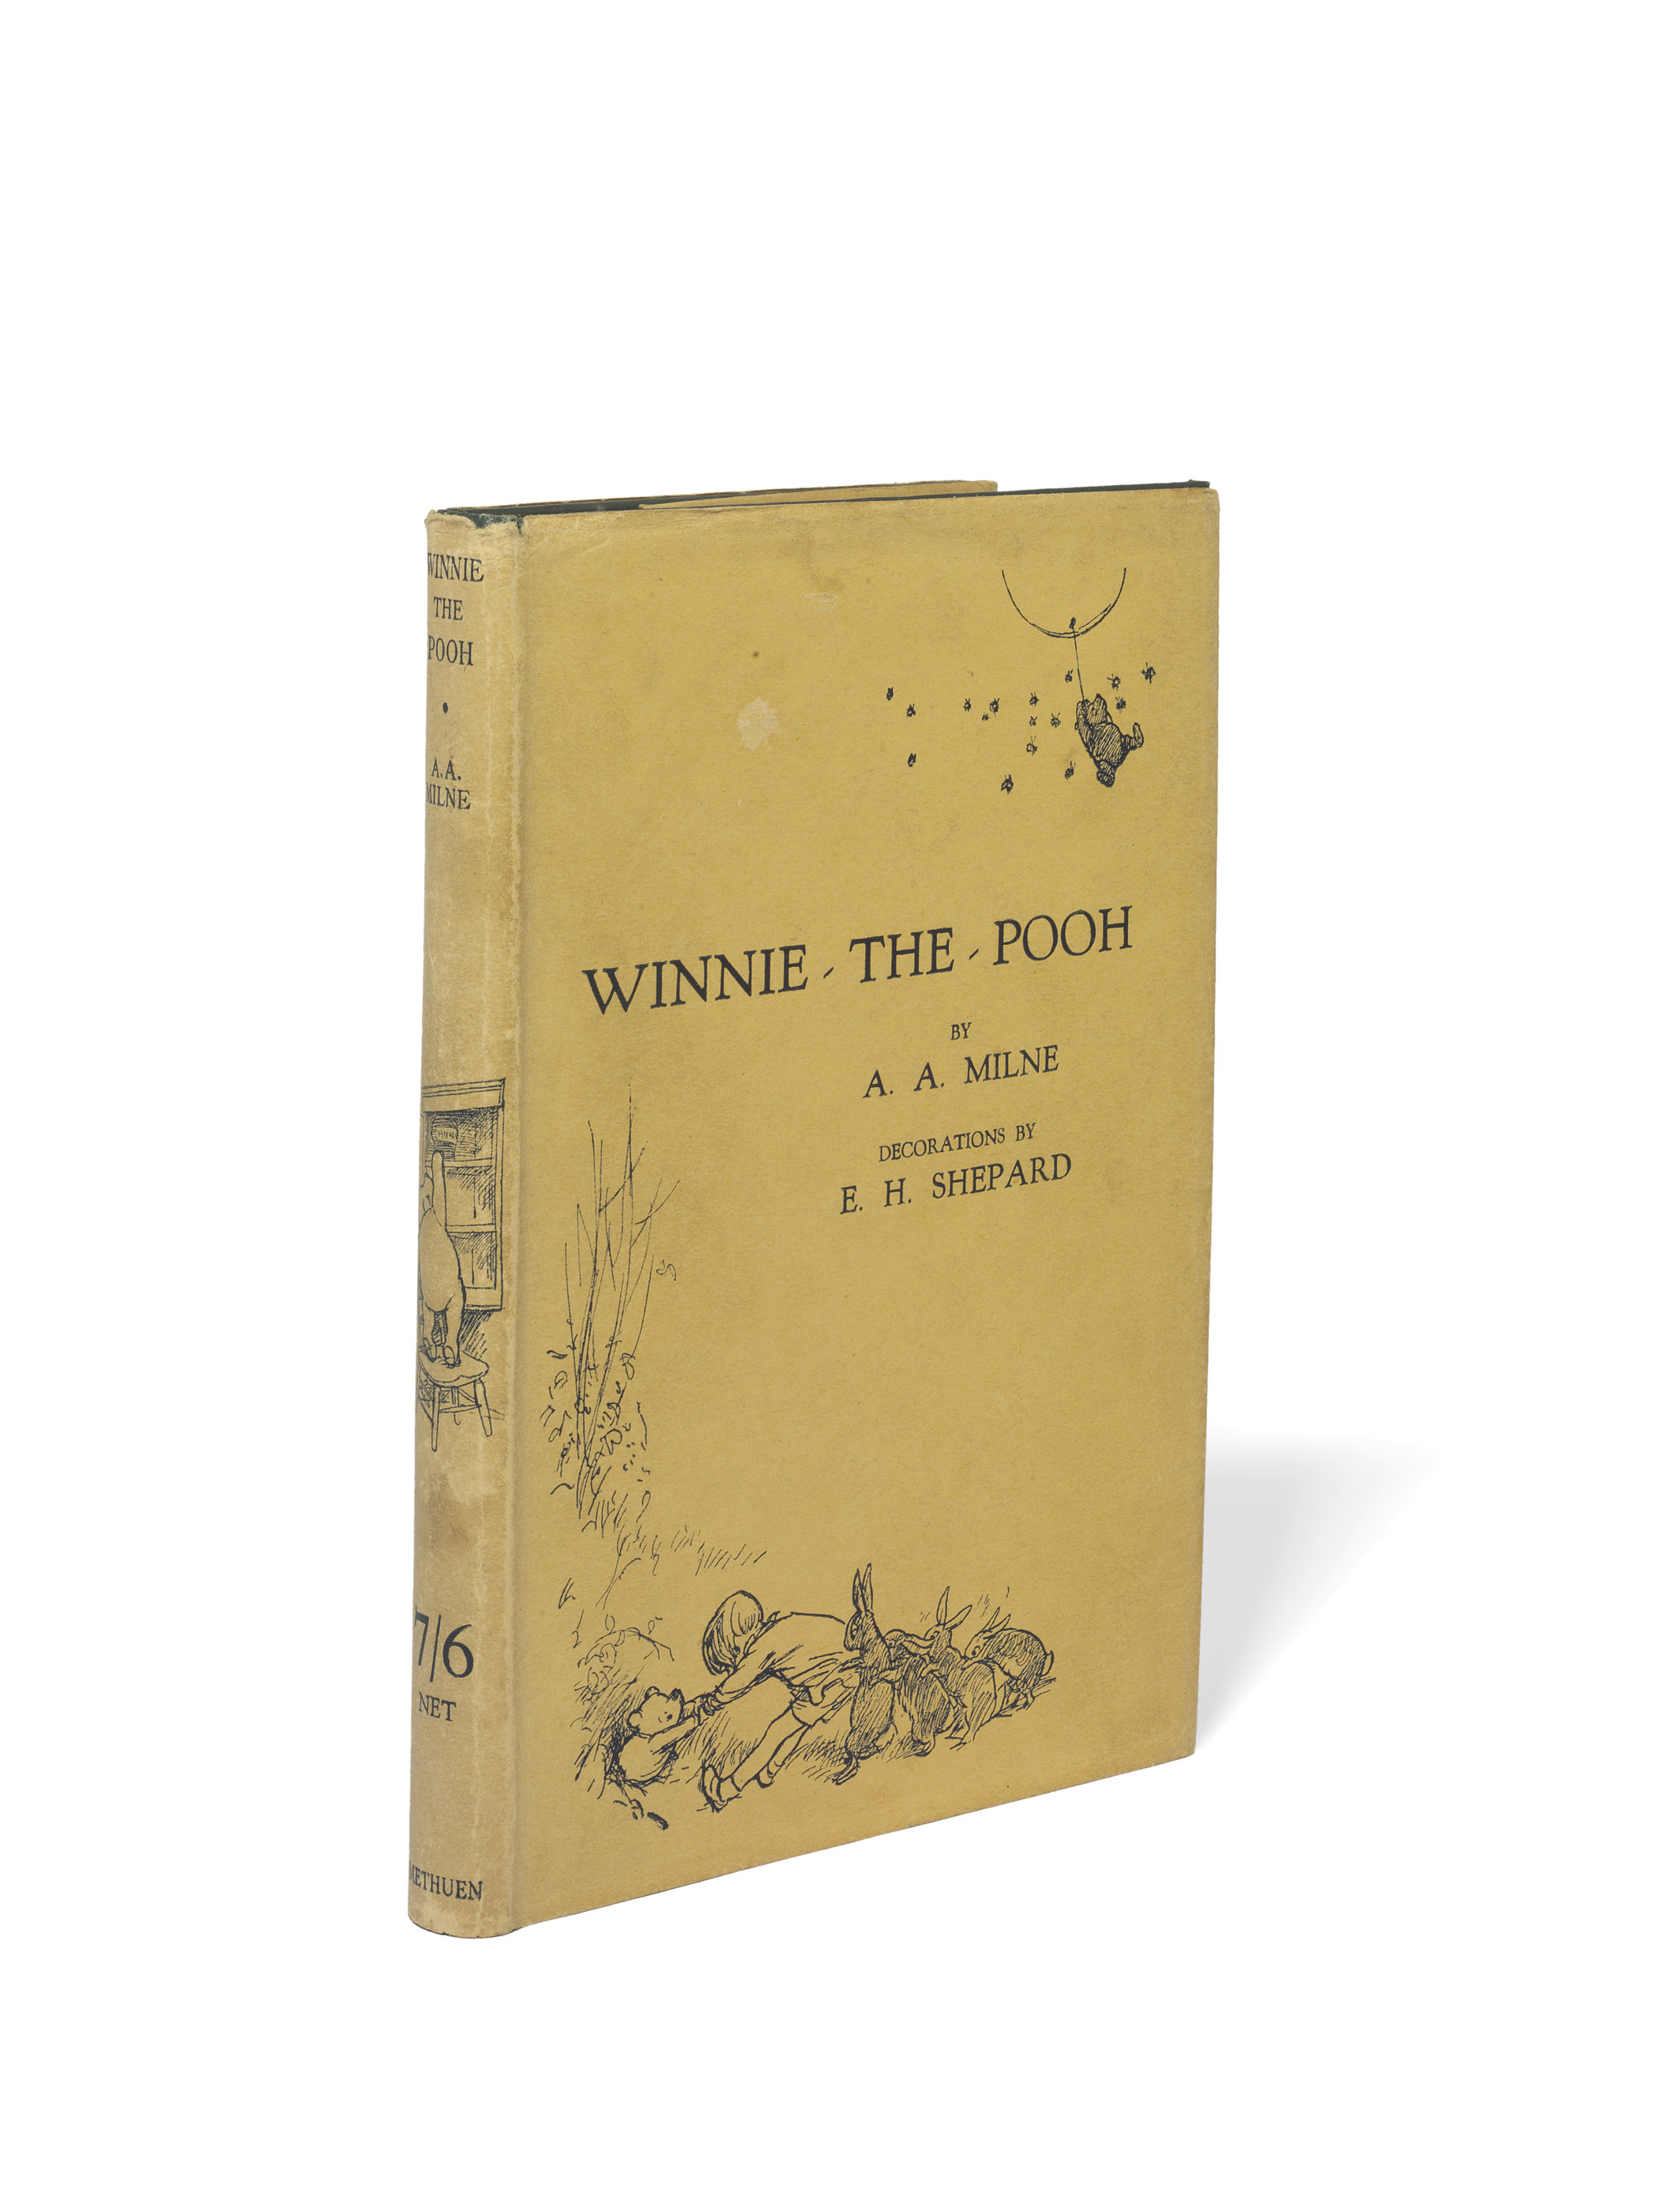 MILNE, Alan Alexander (1882-1956) & Ernest H. SHEPARD (1879-1976, illustrator). Winnie-the-Pooh. London: Methuen & Co. Ltd., 1926. 8° (190 x 125mm). Half-title, illustrations by E. H. Shephard. Original green pictorial cloth gilt, pictorial dust-jacket, top edge gilt (dust-jacket with light soiling, head of spine lightly chipped).